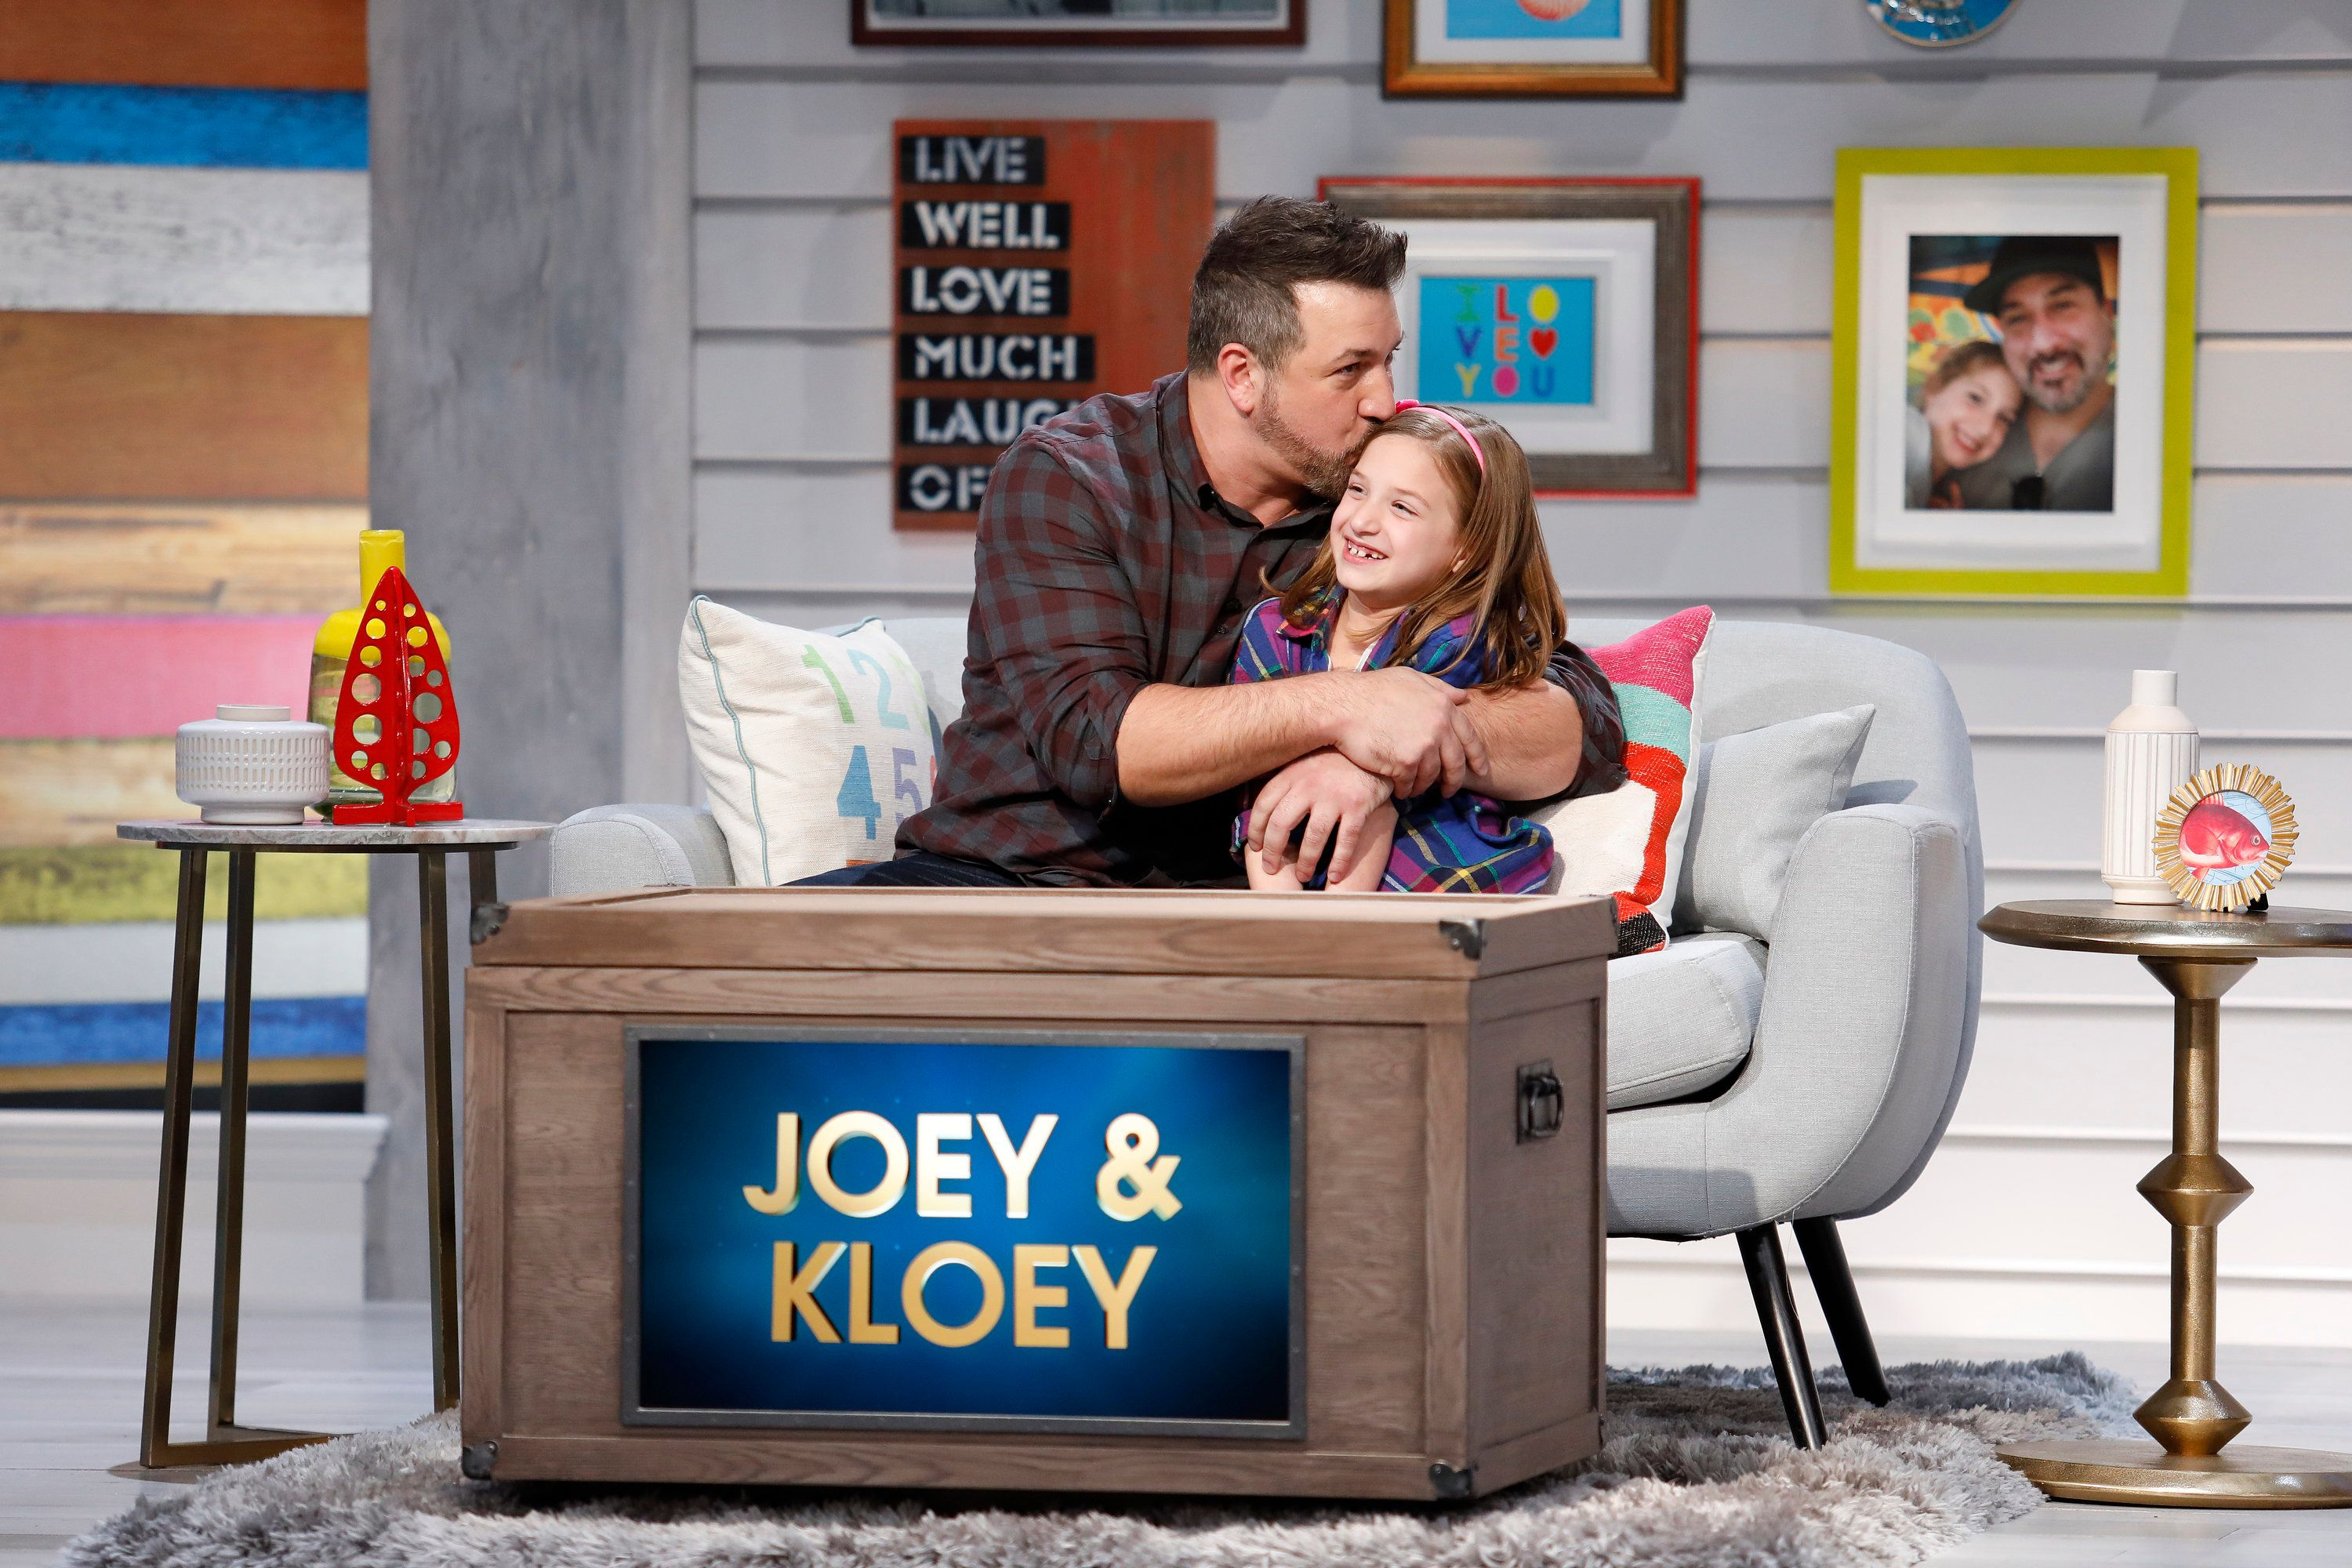 Actor and singer Joey Fatone has opened up about his 7-year-old daughter Kloey, who has autism.